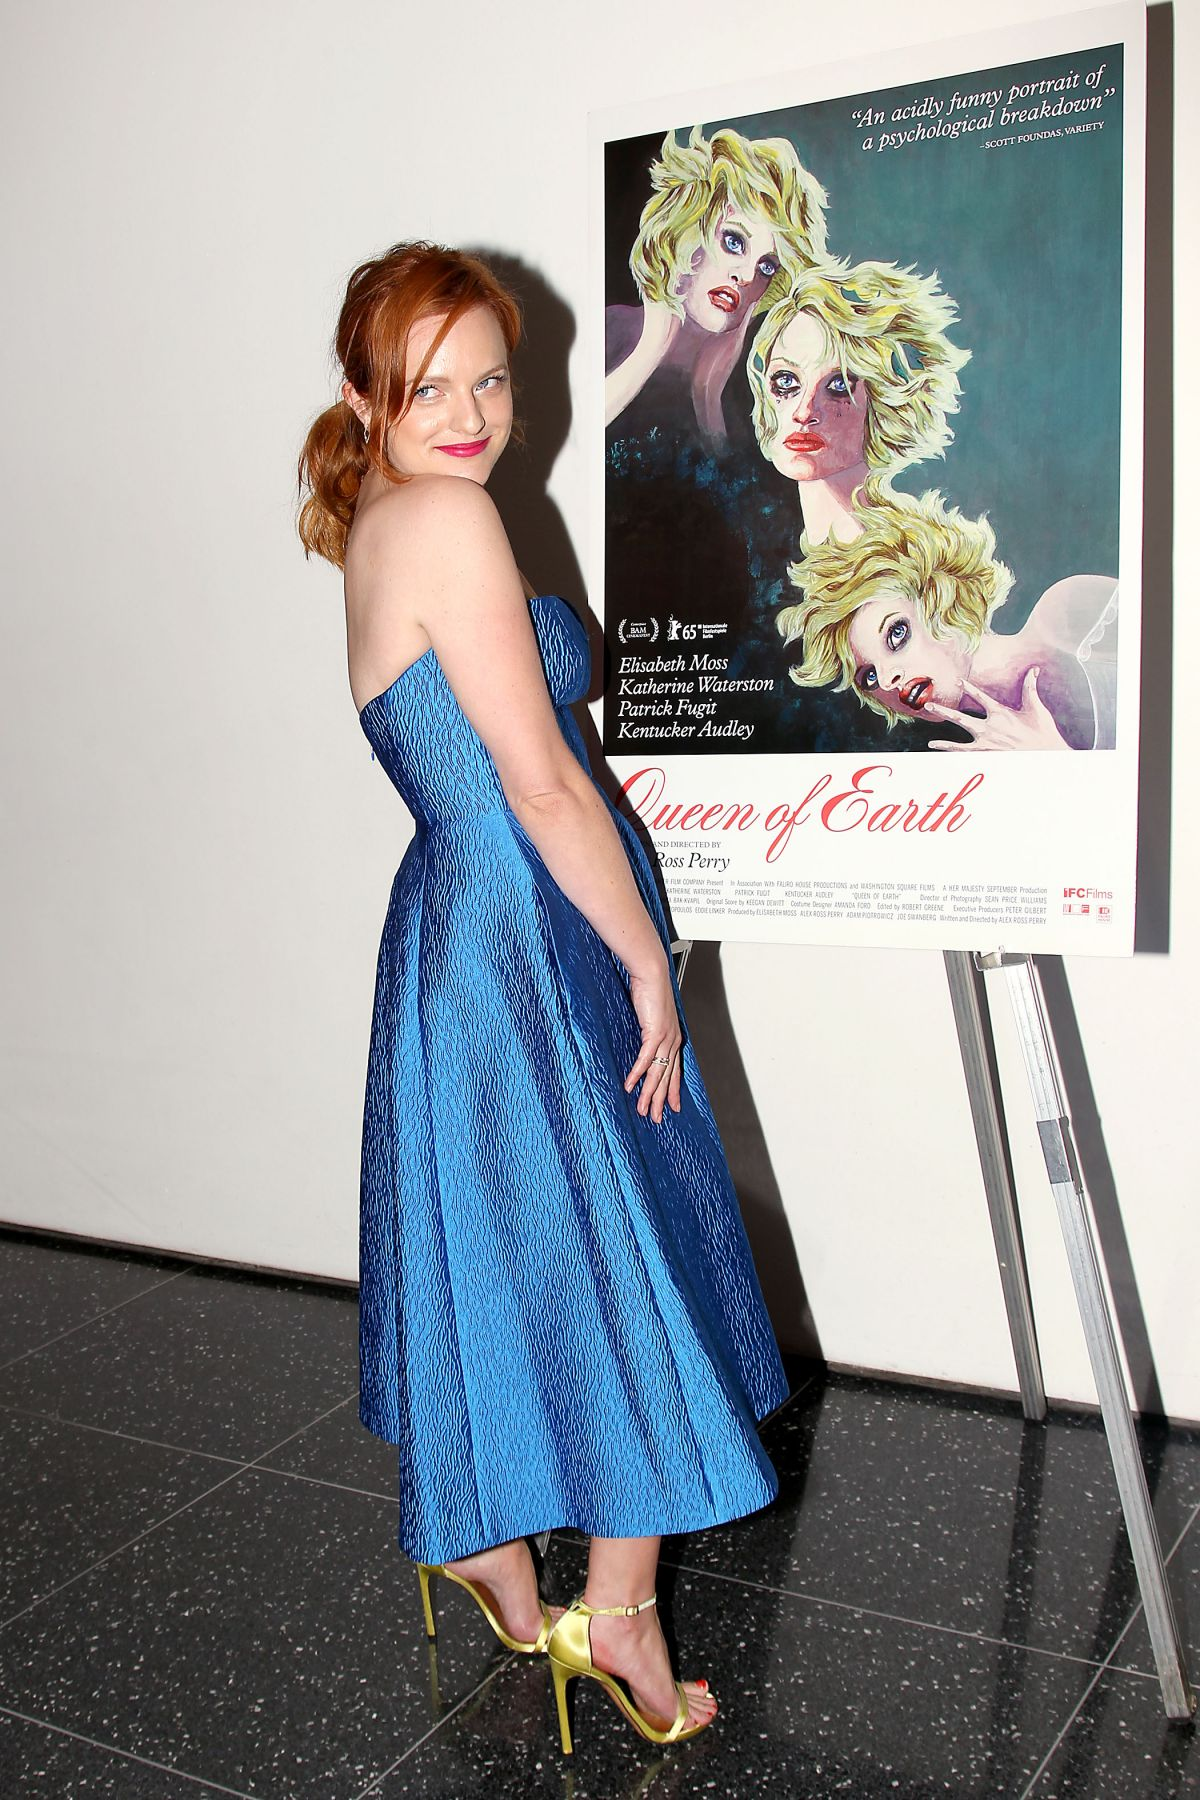 elisabeth-moss-at-queen-of-earth-premiere-in-new-york_4